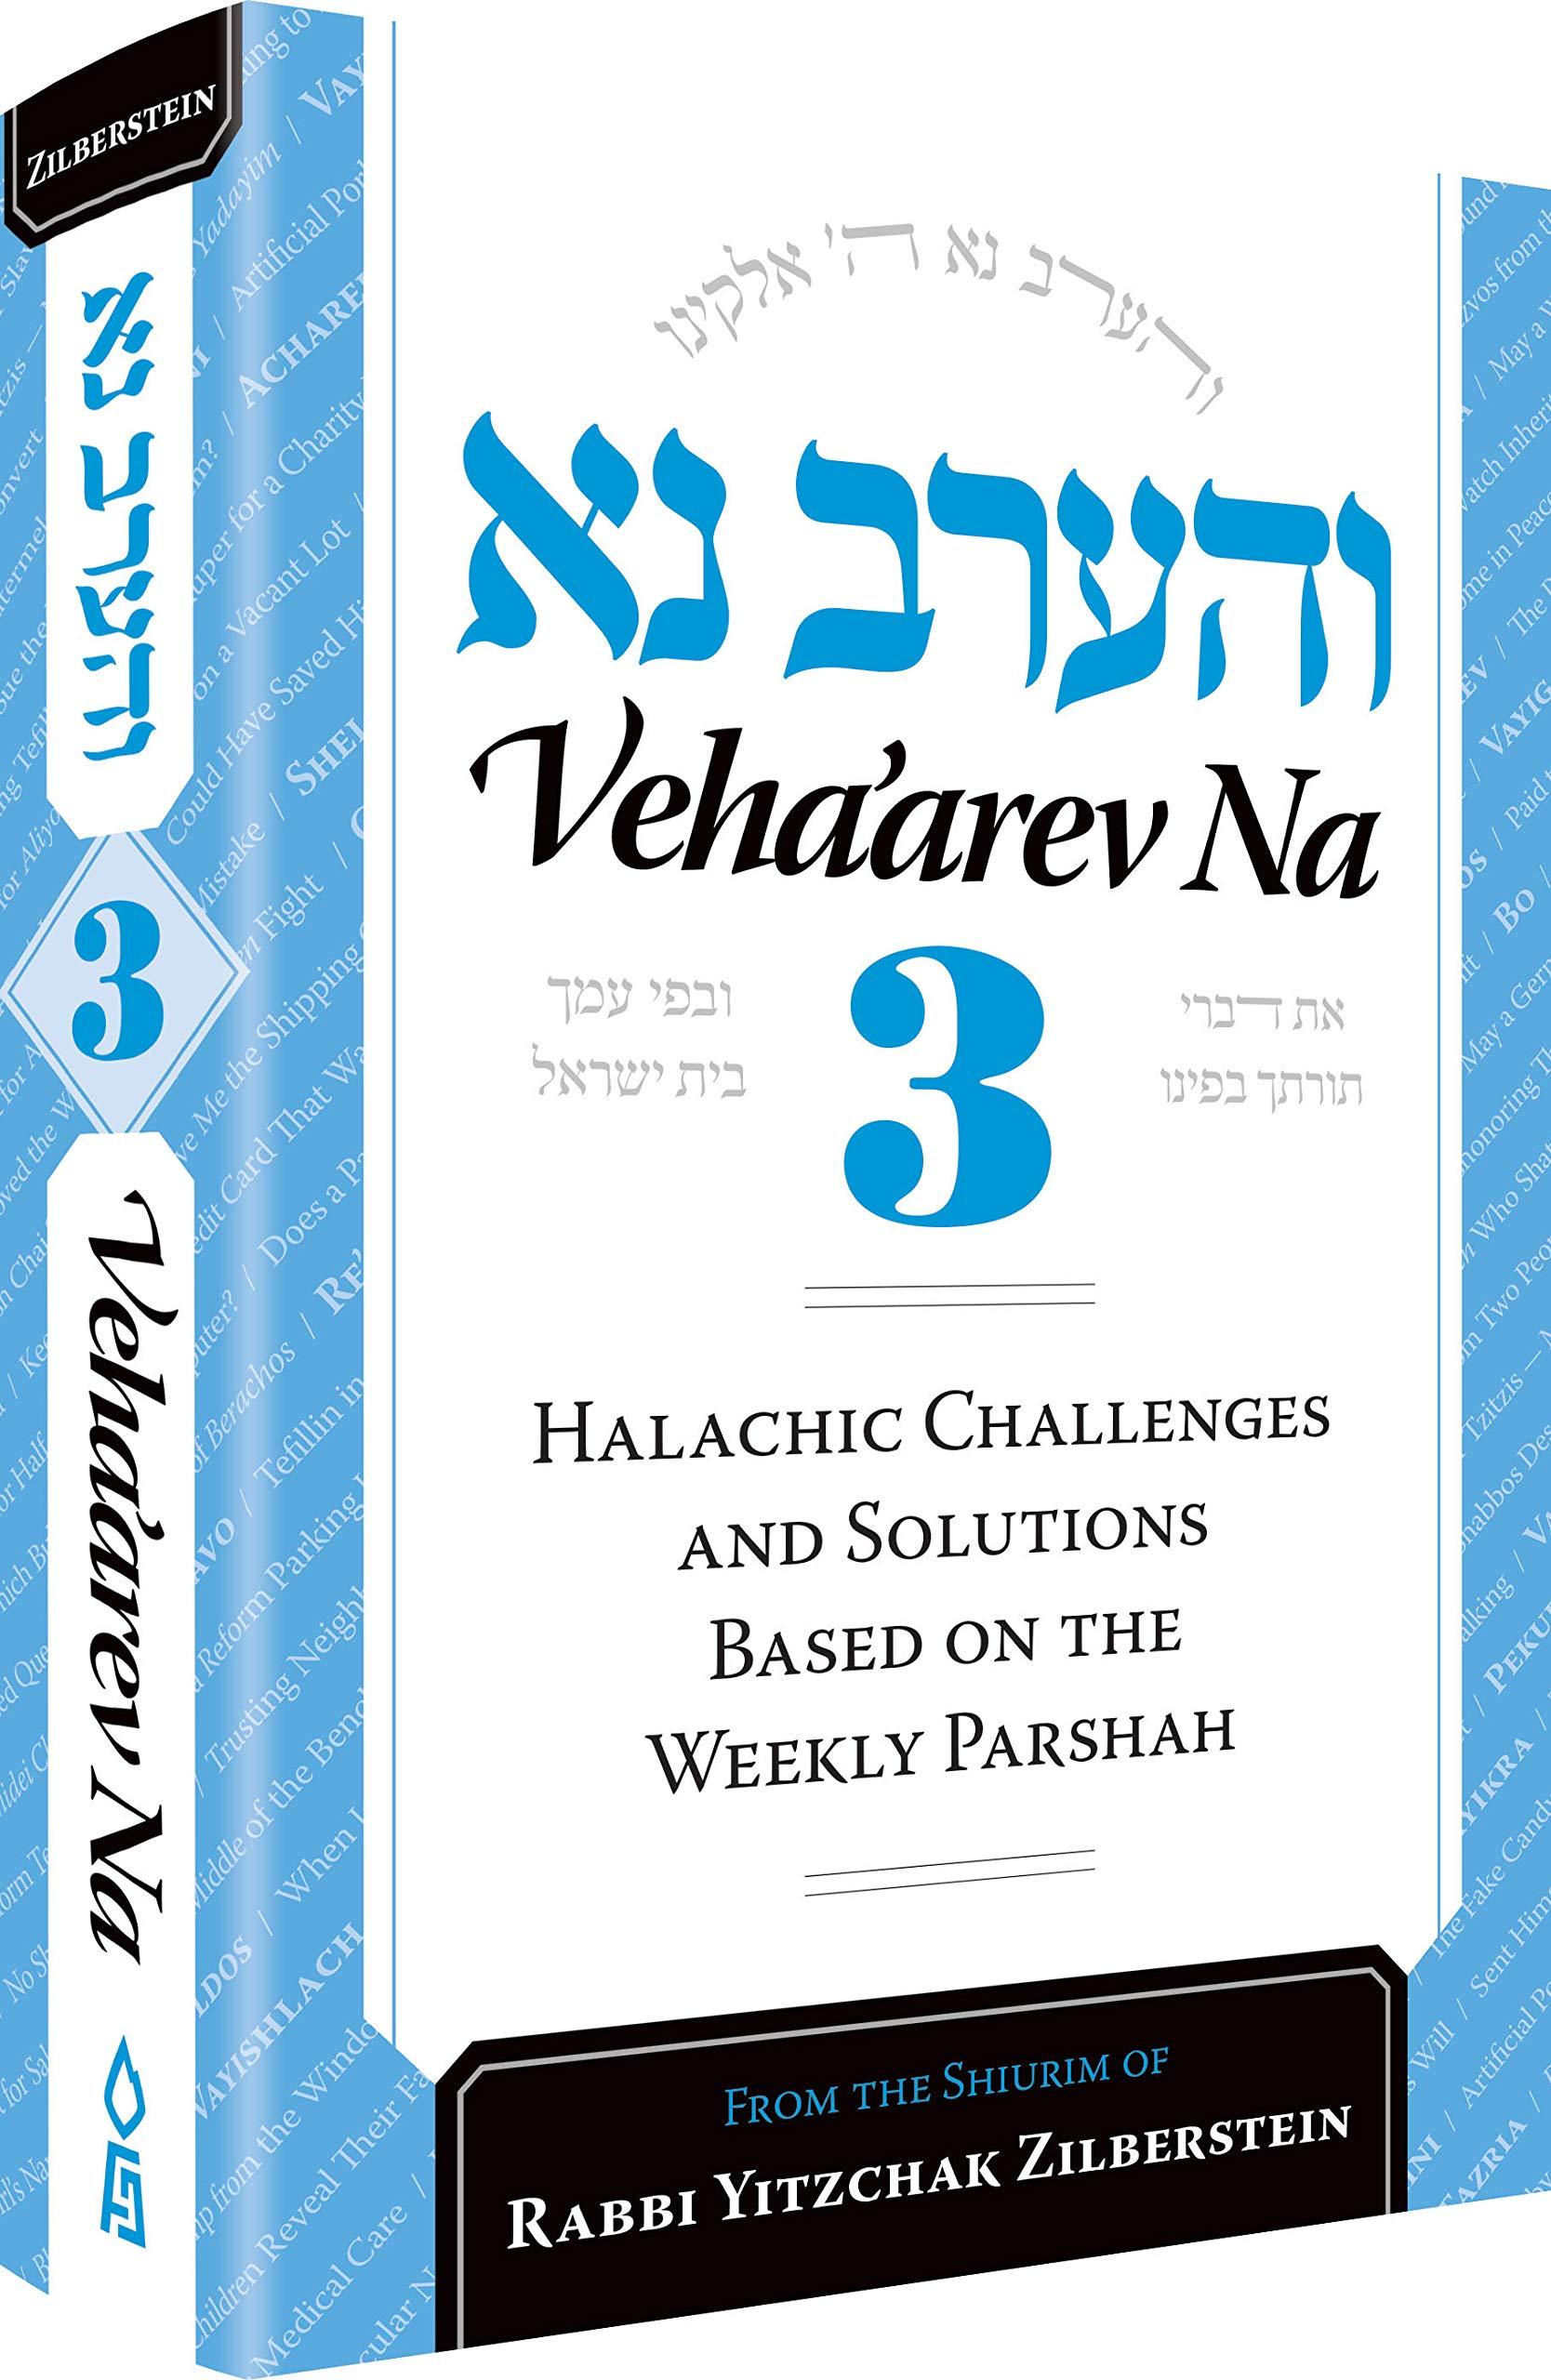 Veha'arev Na, Volume 3:Halachic Challenges and Solutions Based on the Weekly Parshah Based on the Shiurim of Rav Yitzchok Zilberstein